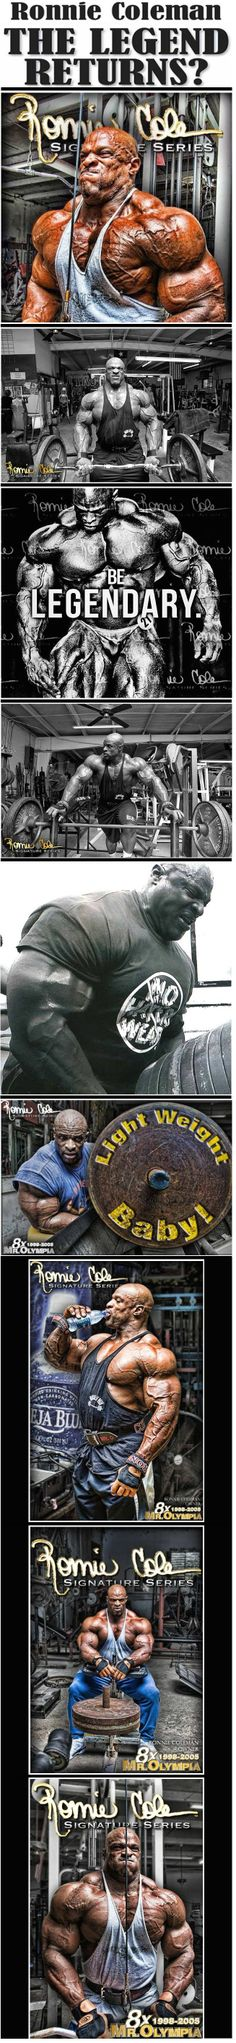 #Ronnie_Coleman ☞ Best ever made. You deserve the best and now are the best